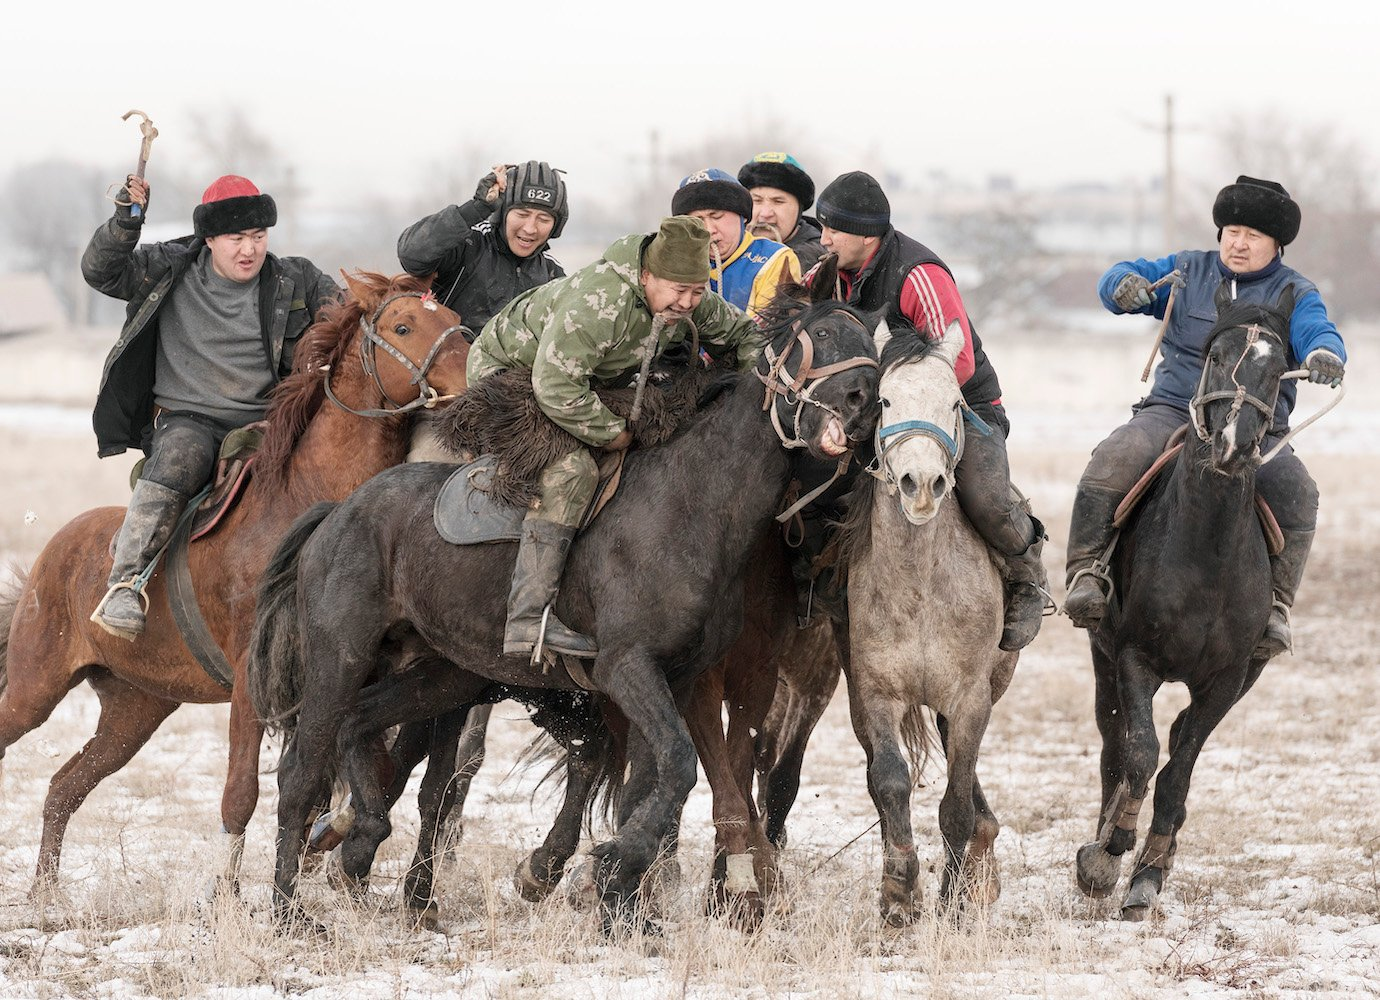 Letter from a kok boru match in Kyrgyzstan: where an ancient sport meets modern times